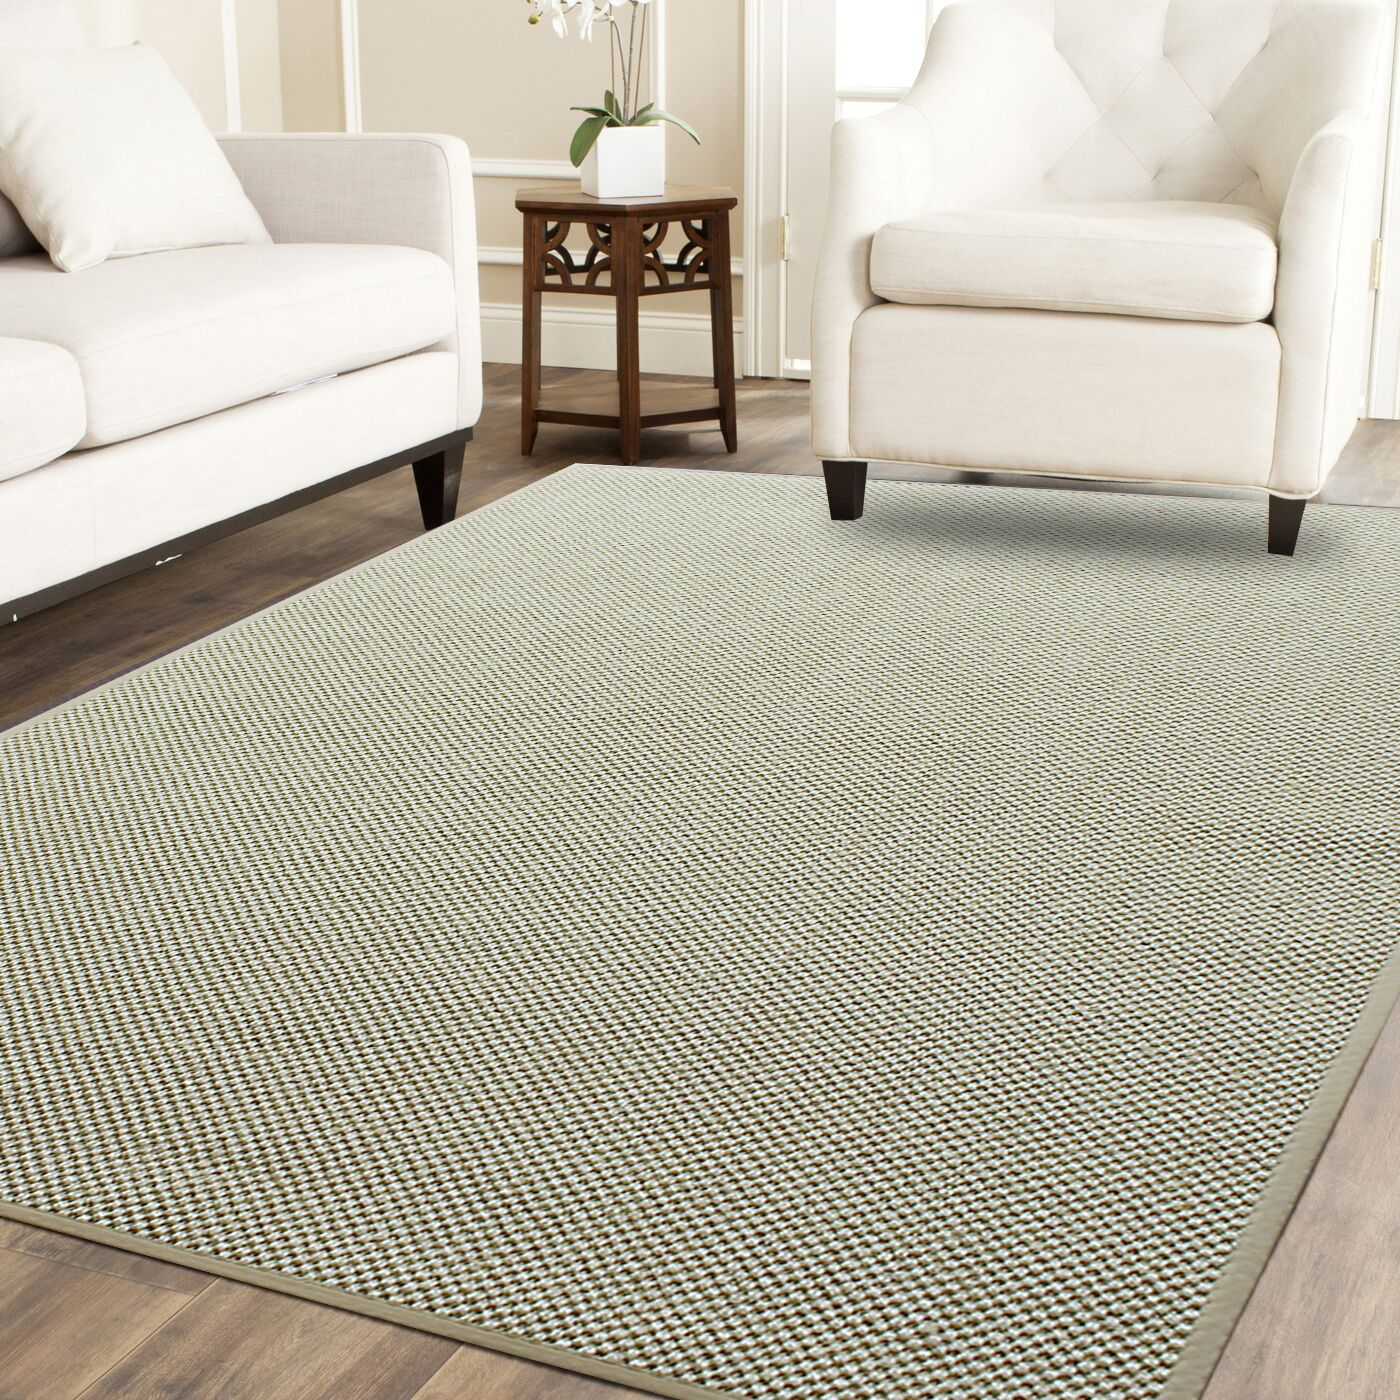 Tiger Eye Maize Area Rug Size: 8' x 10'